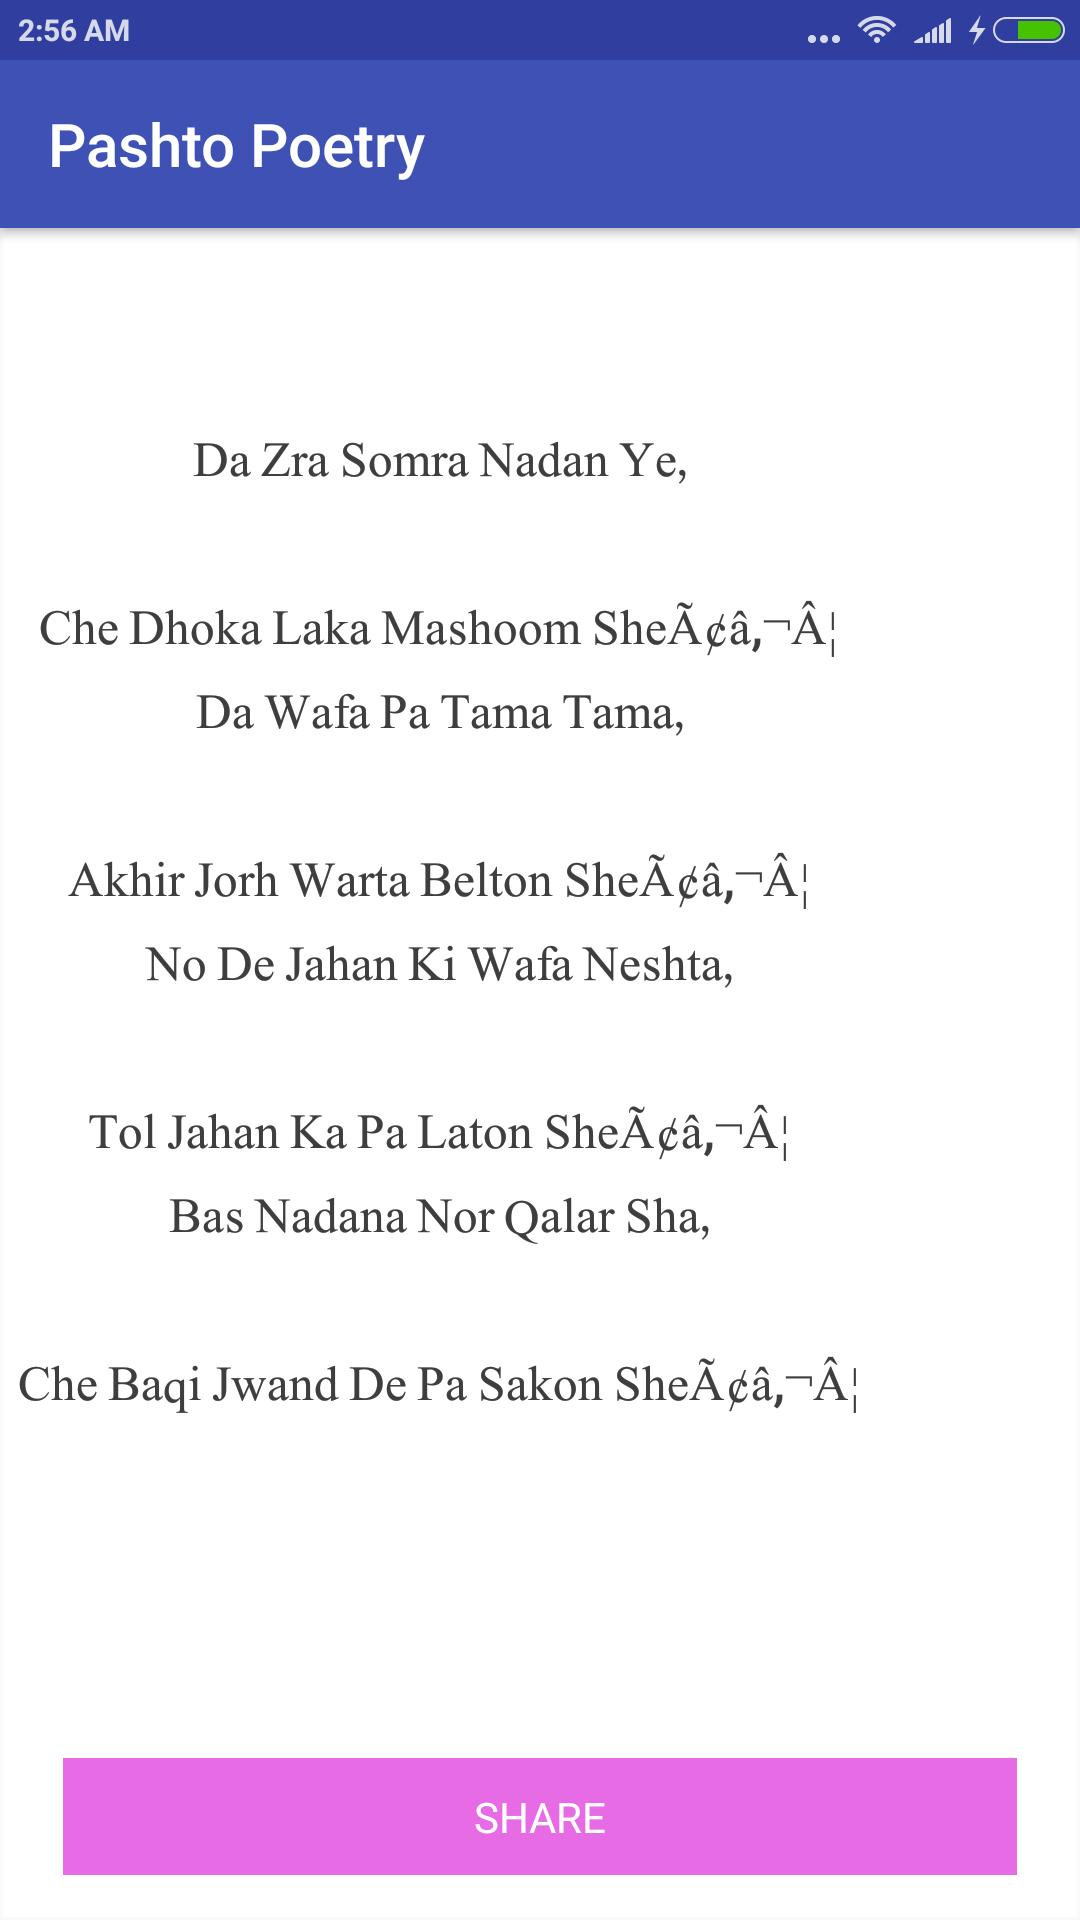 Pashto Poetry shayari for Android - APK Download